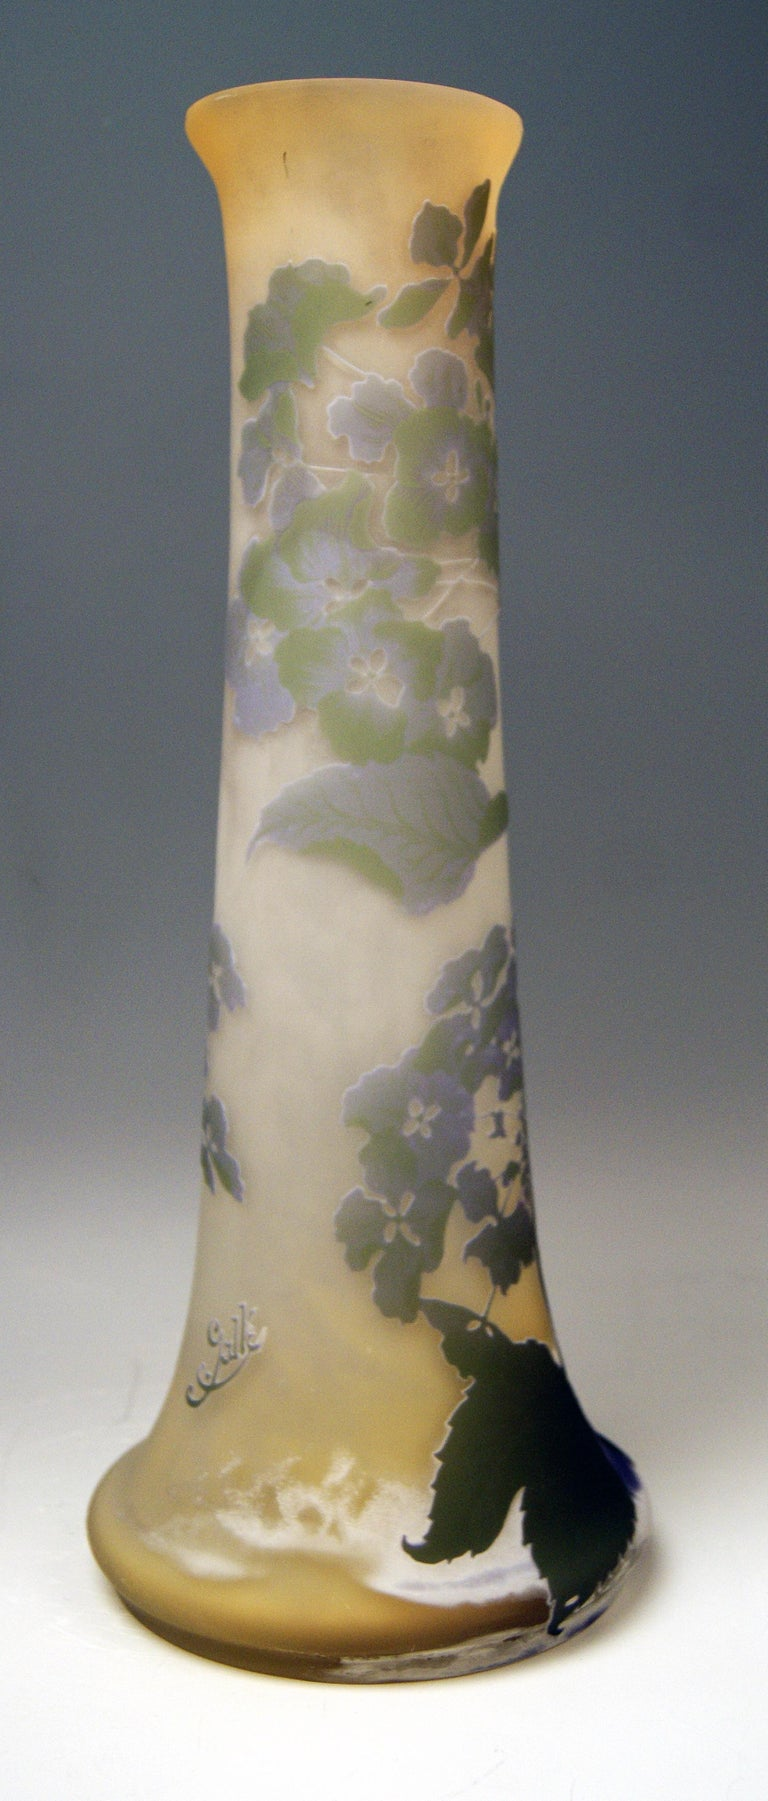 Etched Gallé Art Nouveau Vase Galle Mallows Flowers France Nancy Height 18.30in c.1904 For Sale